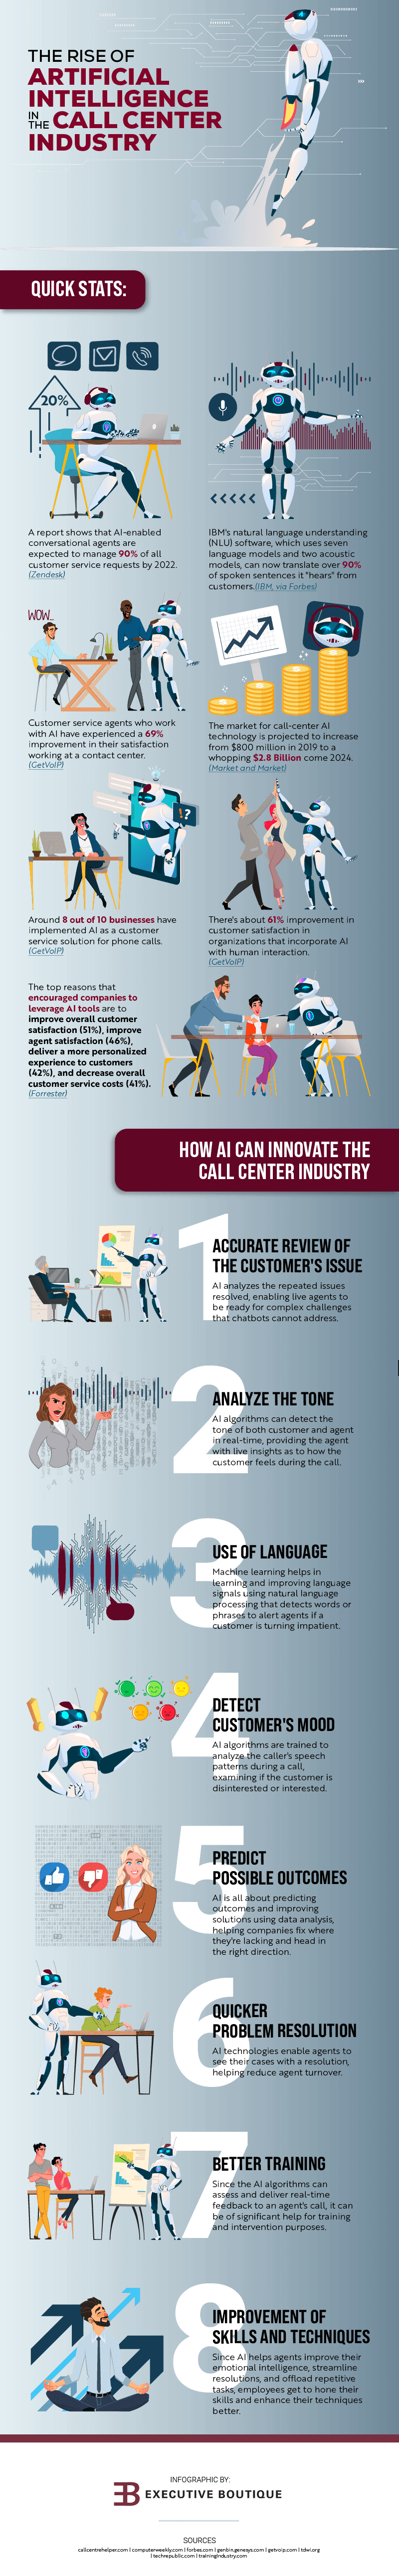 the rise of ai in the call center industry infographic